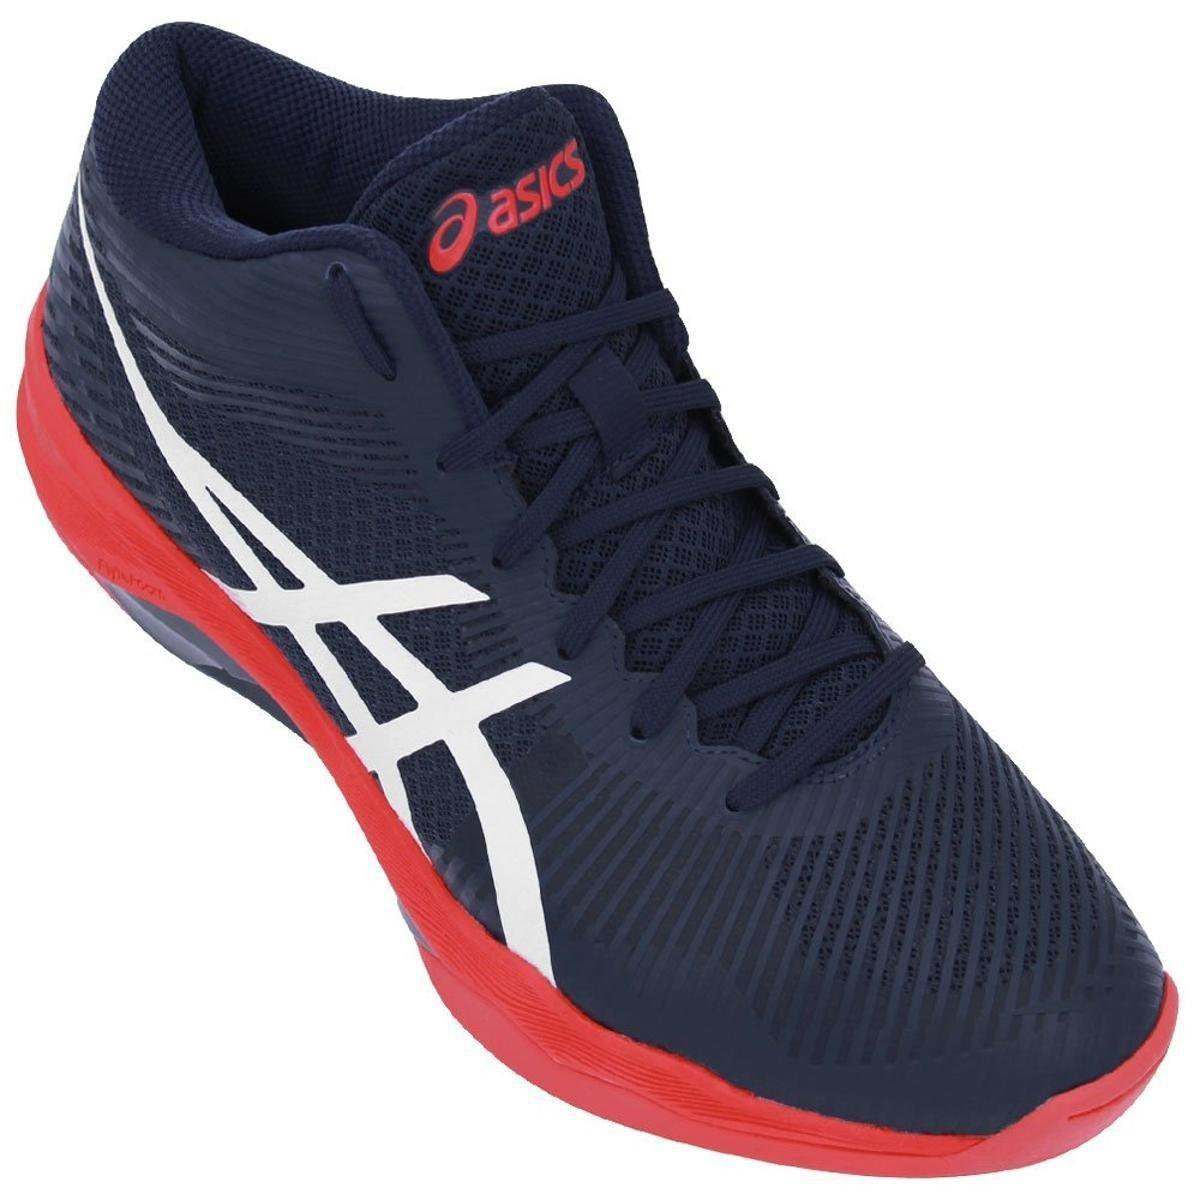 05488b3b1ab Tênis Asics Gel-Volley Elite FF MT Masculino